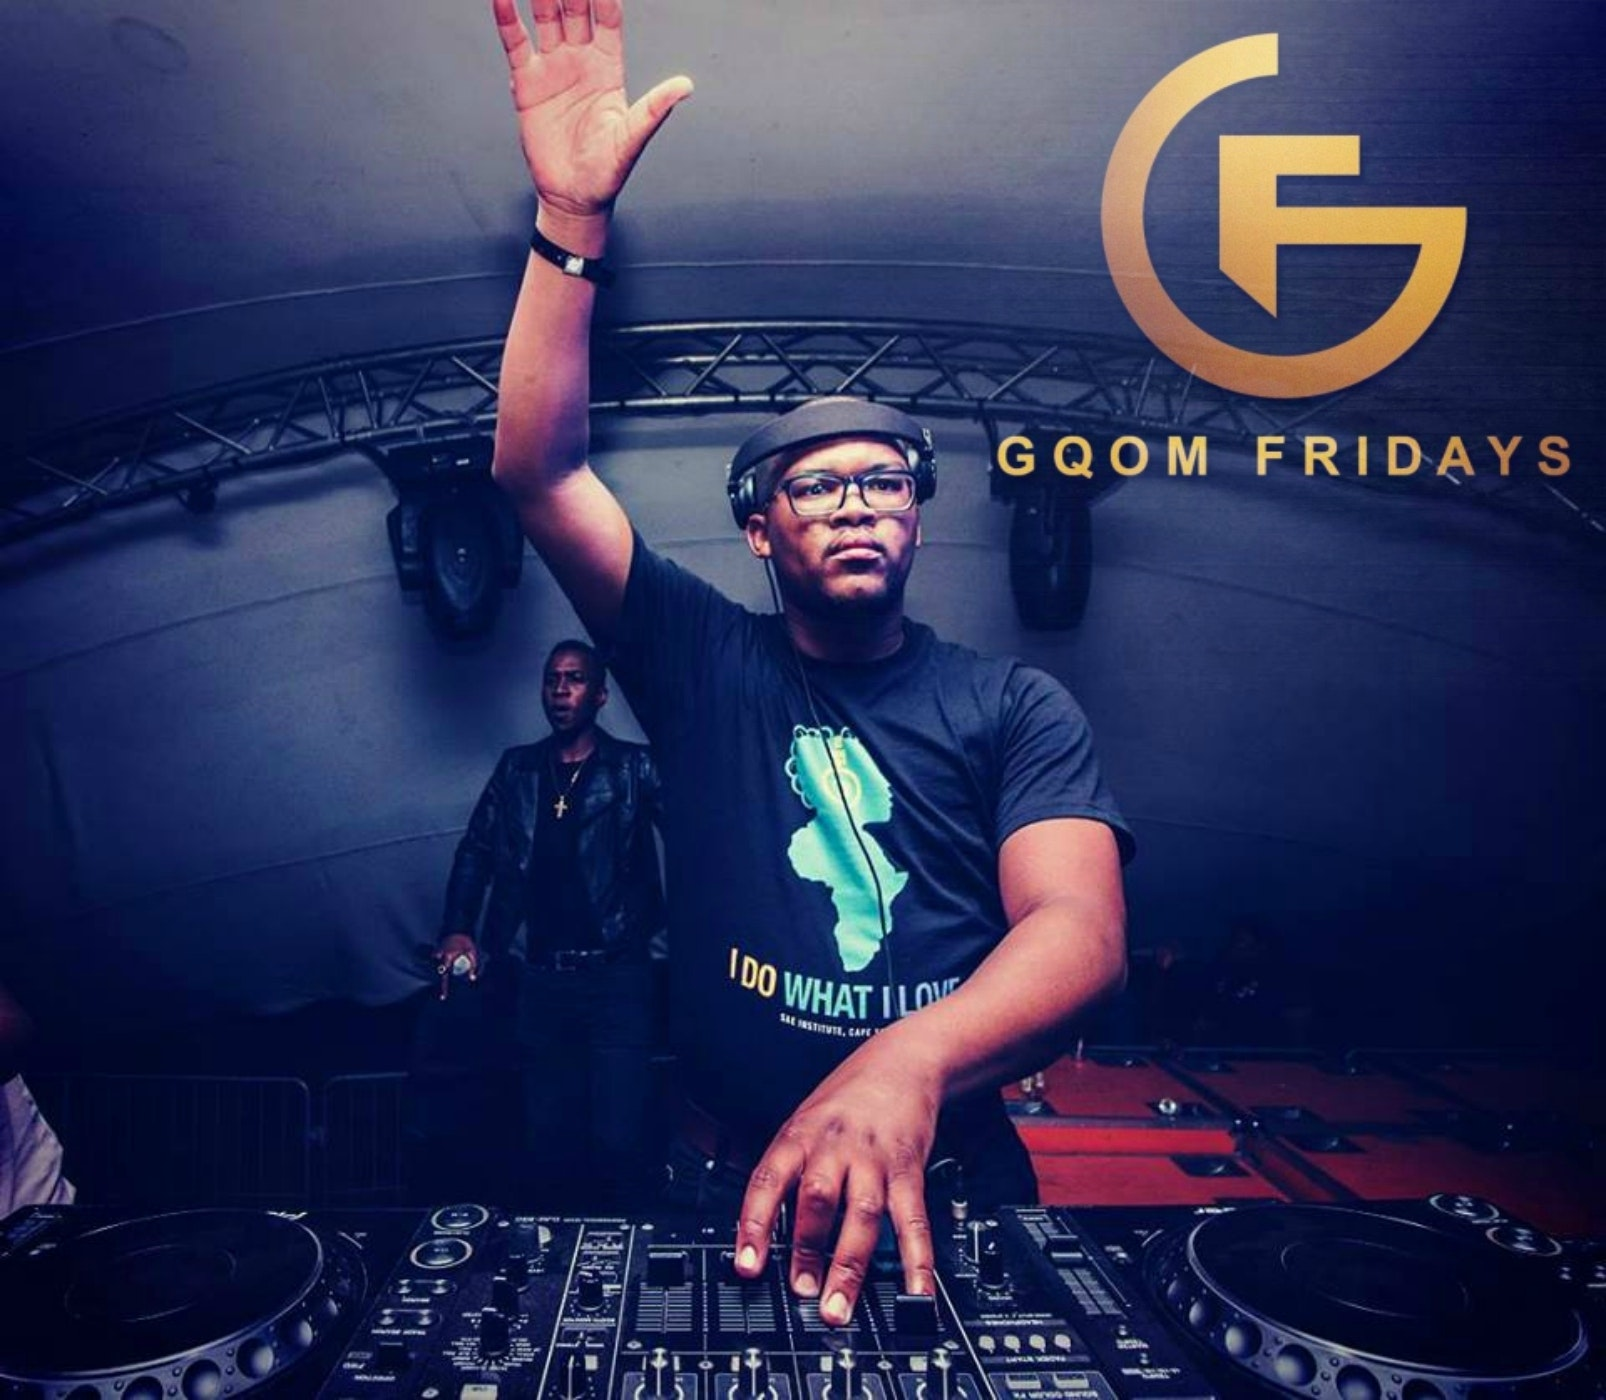 On this week's #GqomFridaysMix Vol 53 (Mixed By DiloXclusiv